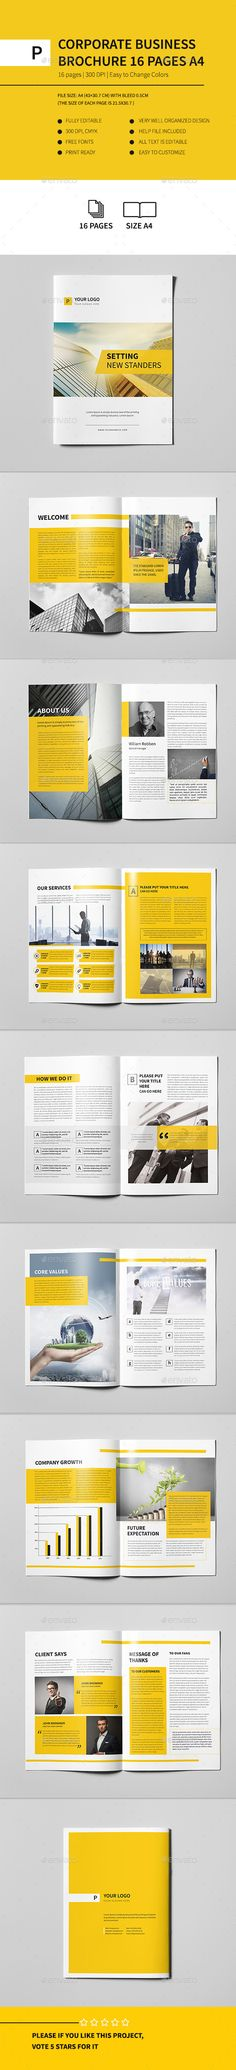 Corporate Business Brochure 16 pages A4 Template #design Download: http://graphicriver.net/item/corporate-business-brochure-16-pages-a4/12391048?ref=ksioks